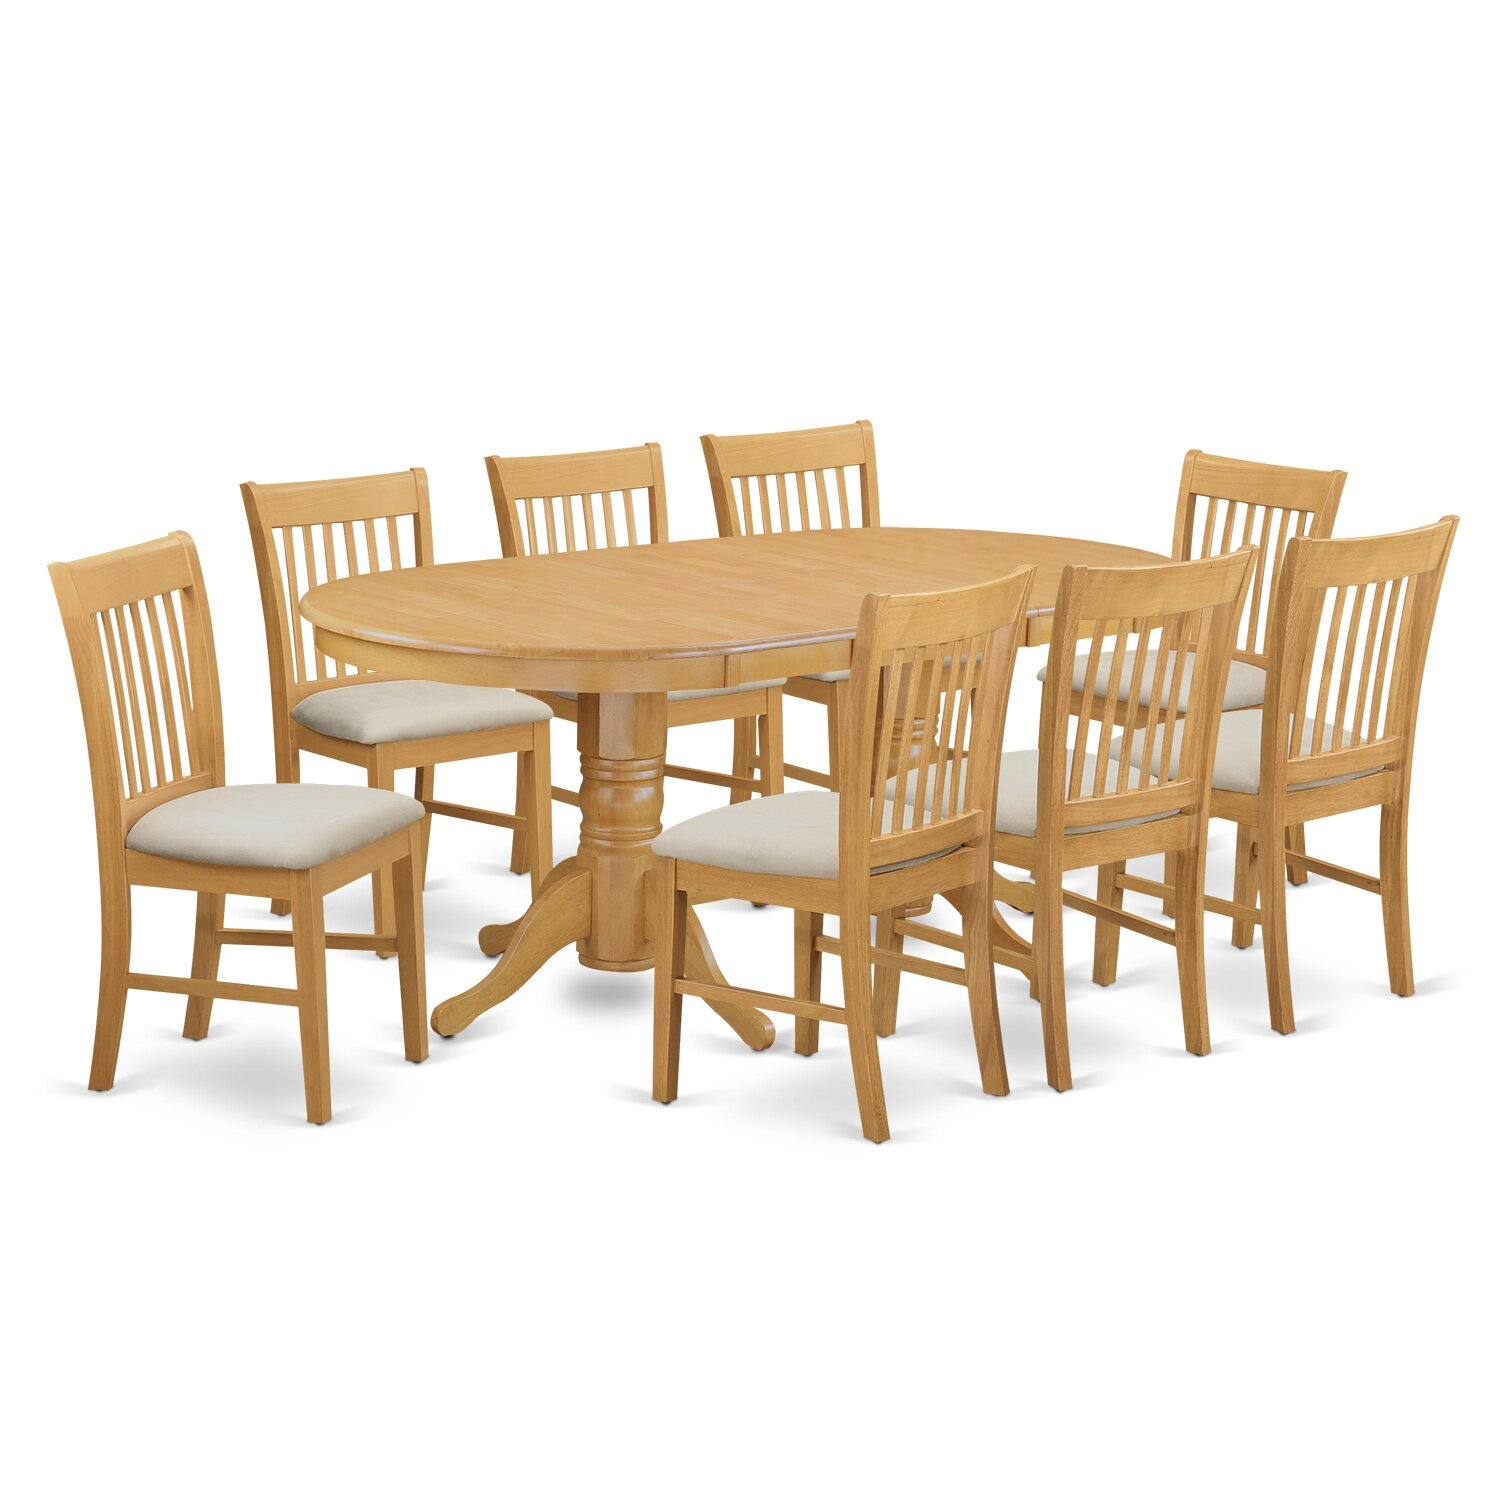 Darby home co rockdale 9 piece dining set wayfair for Dining room furniture 9 piece